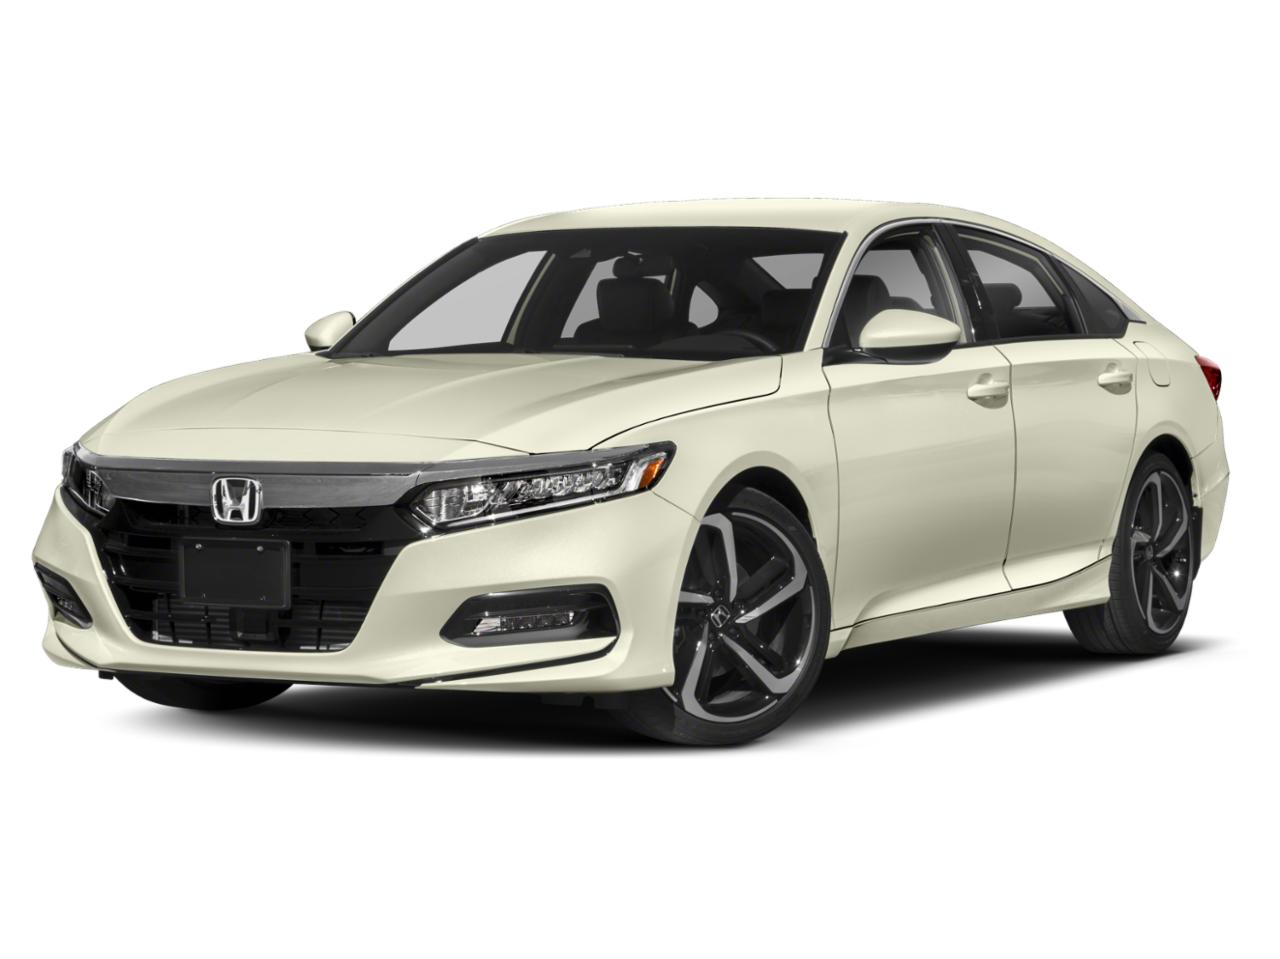 2018 Honda Accord Sedan Vehicle Photo in Nashua, NH 03060